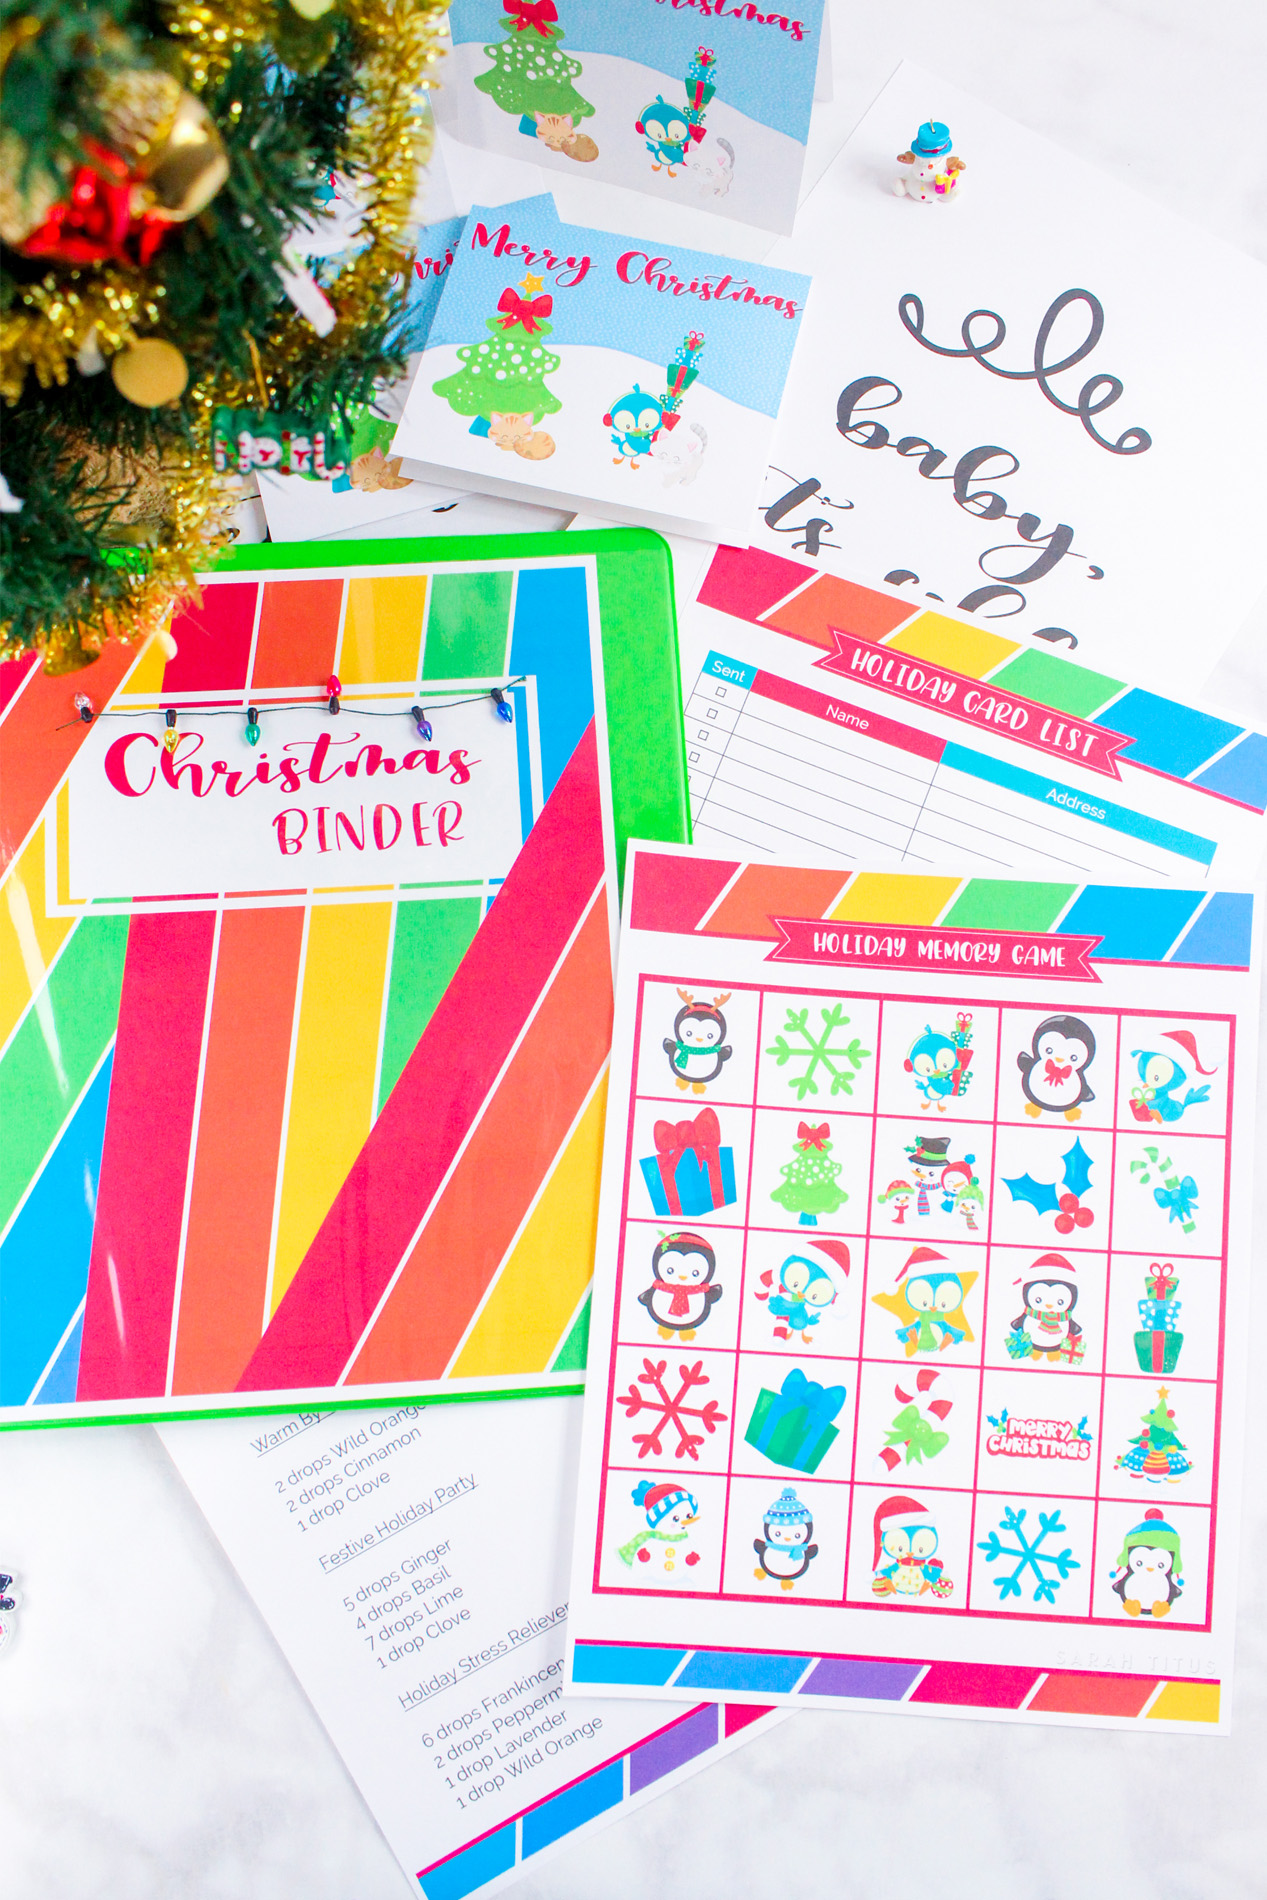 Love all things Christmas? Then you will NOT want to miss your chance to get the new80+ pageChristmas Binder.